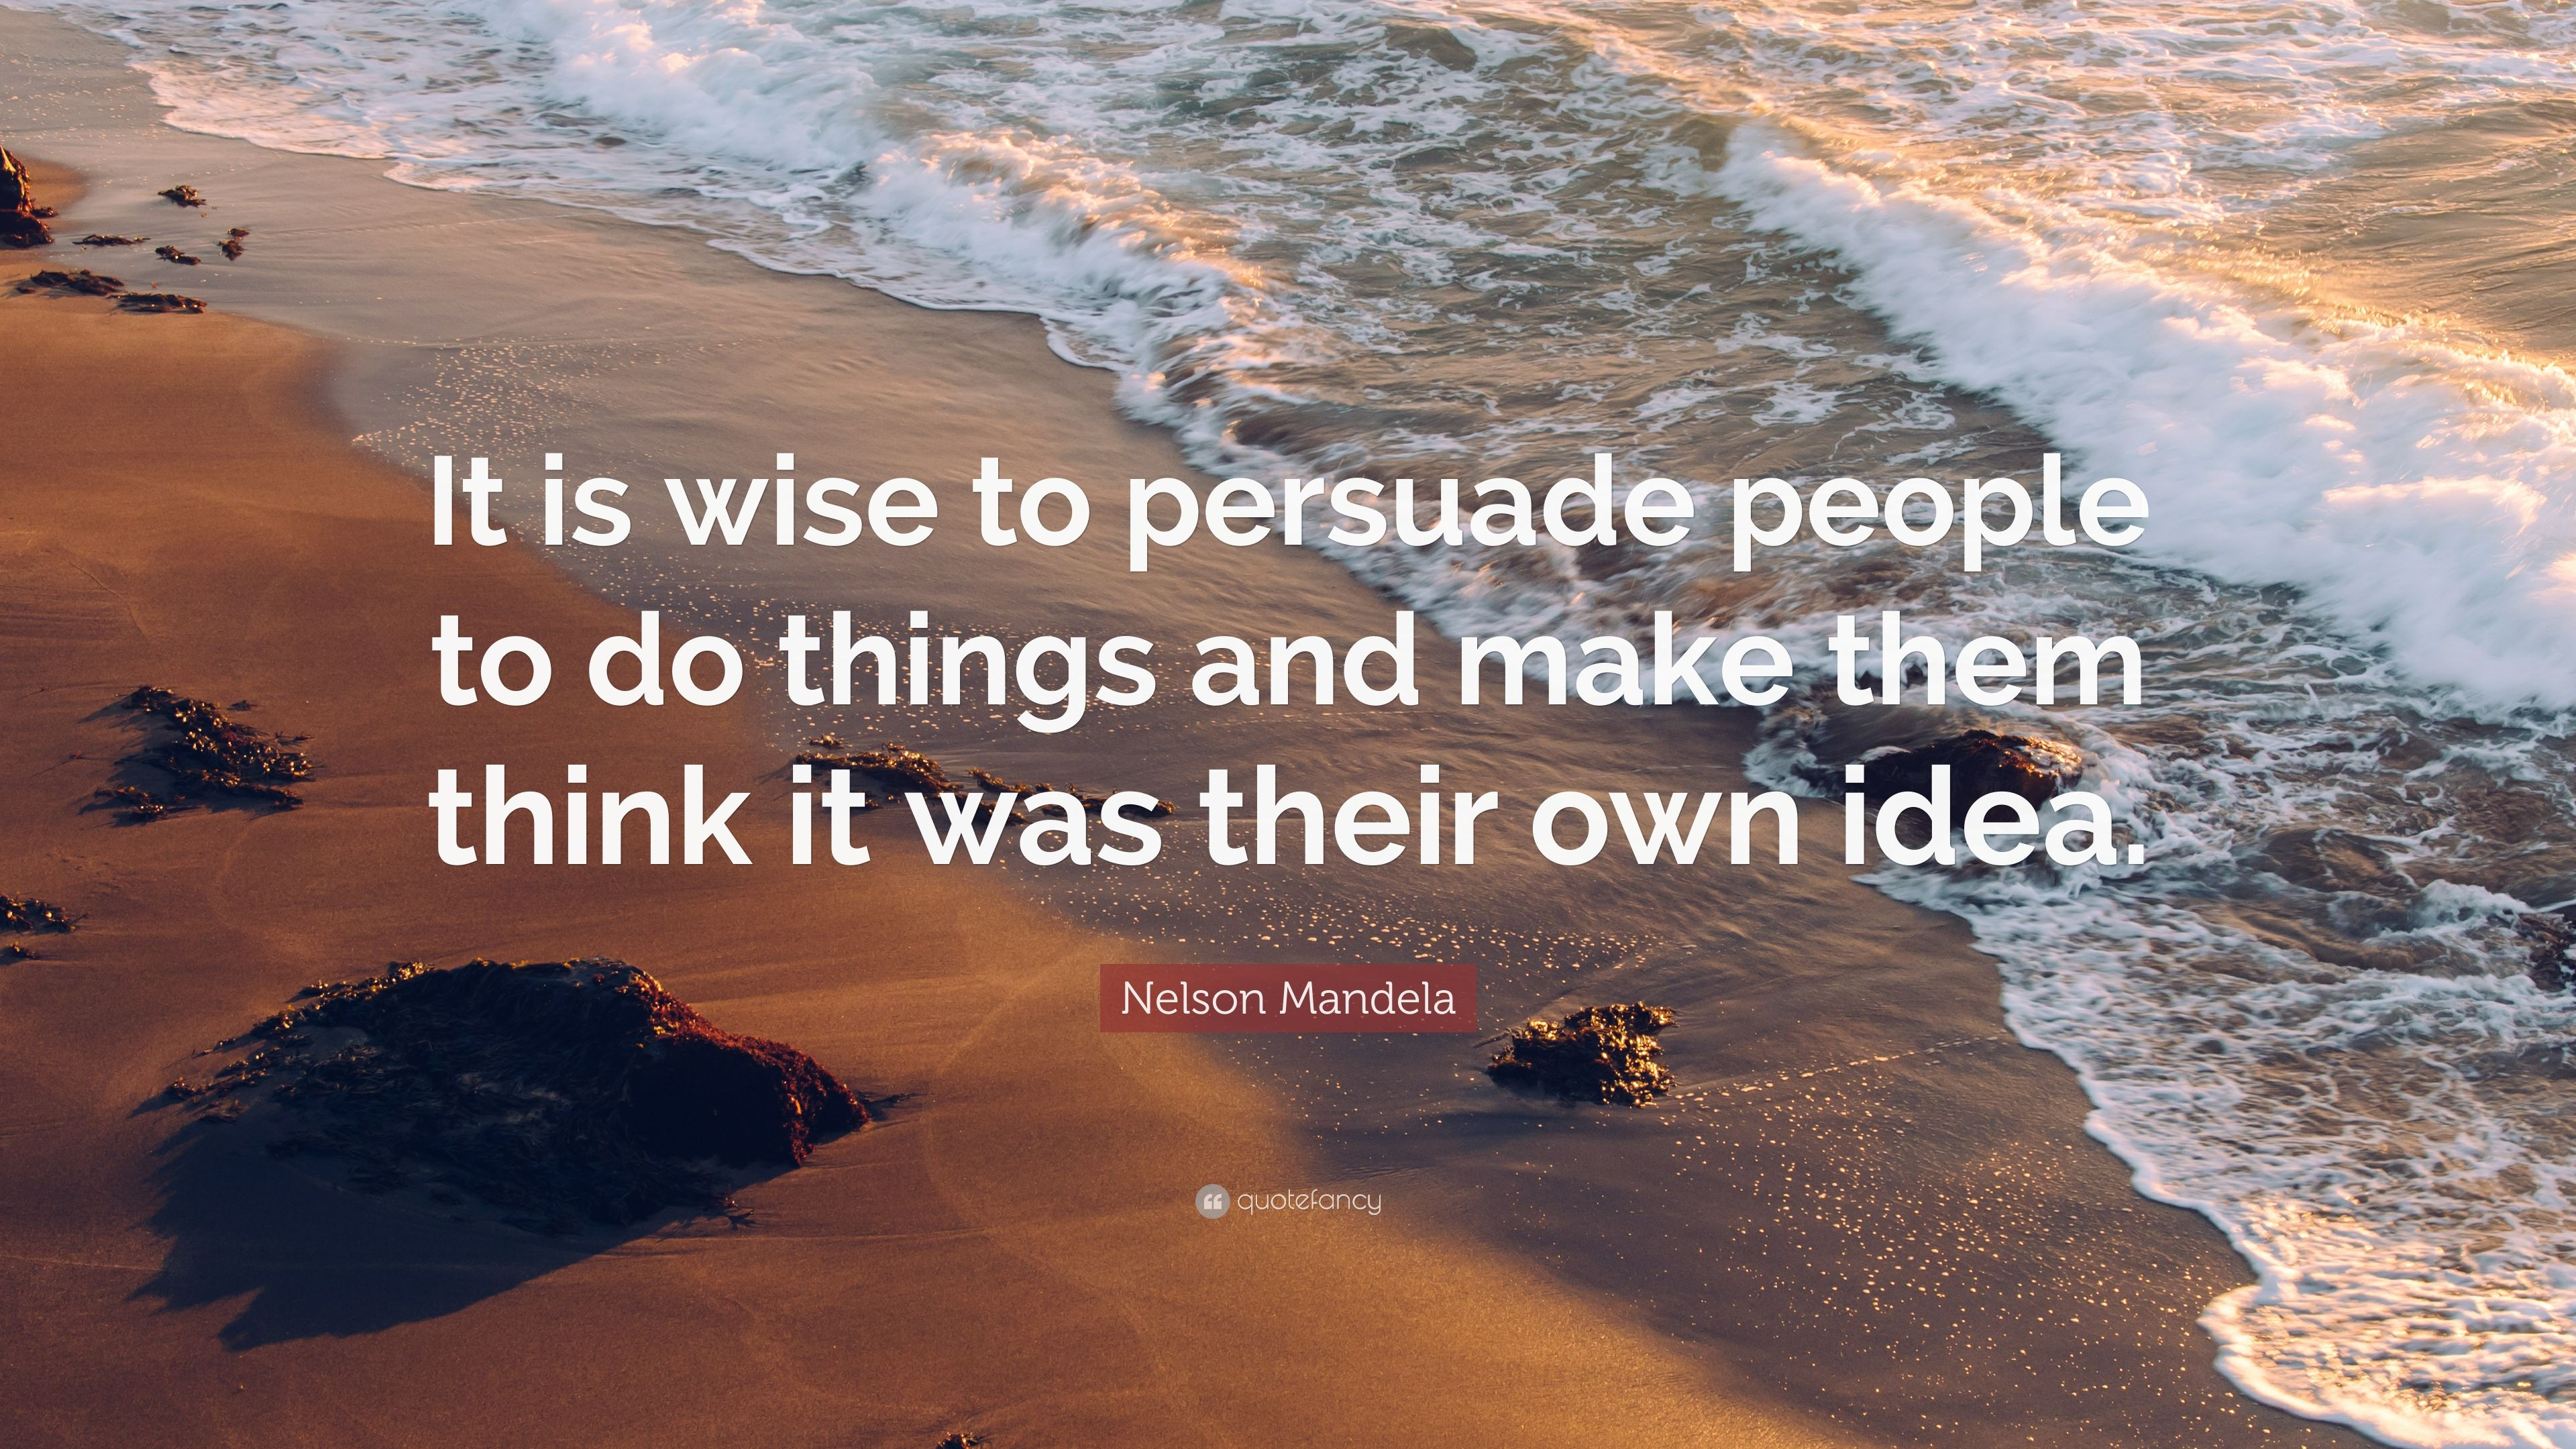 things to persuade people to do